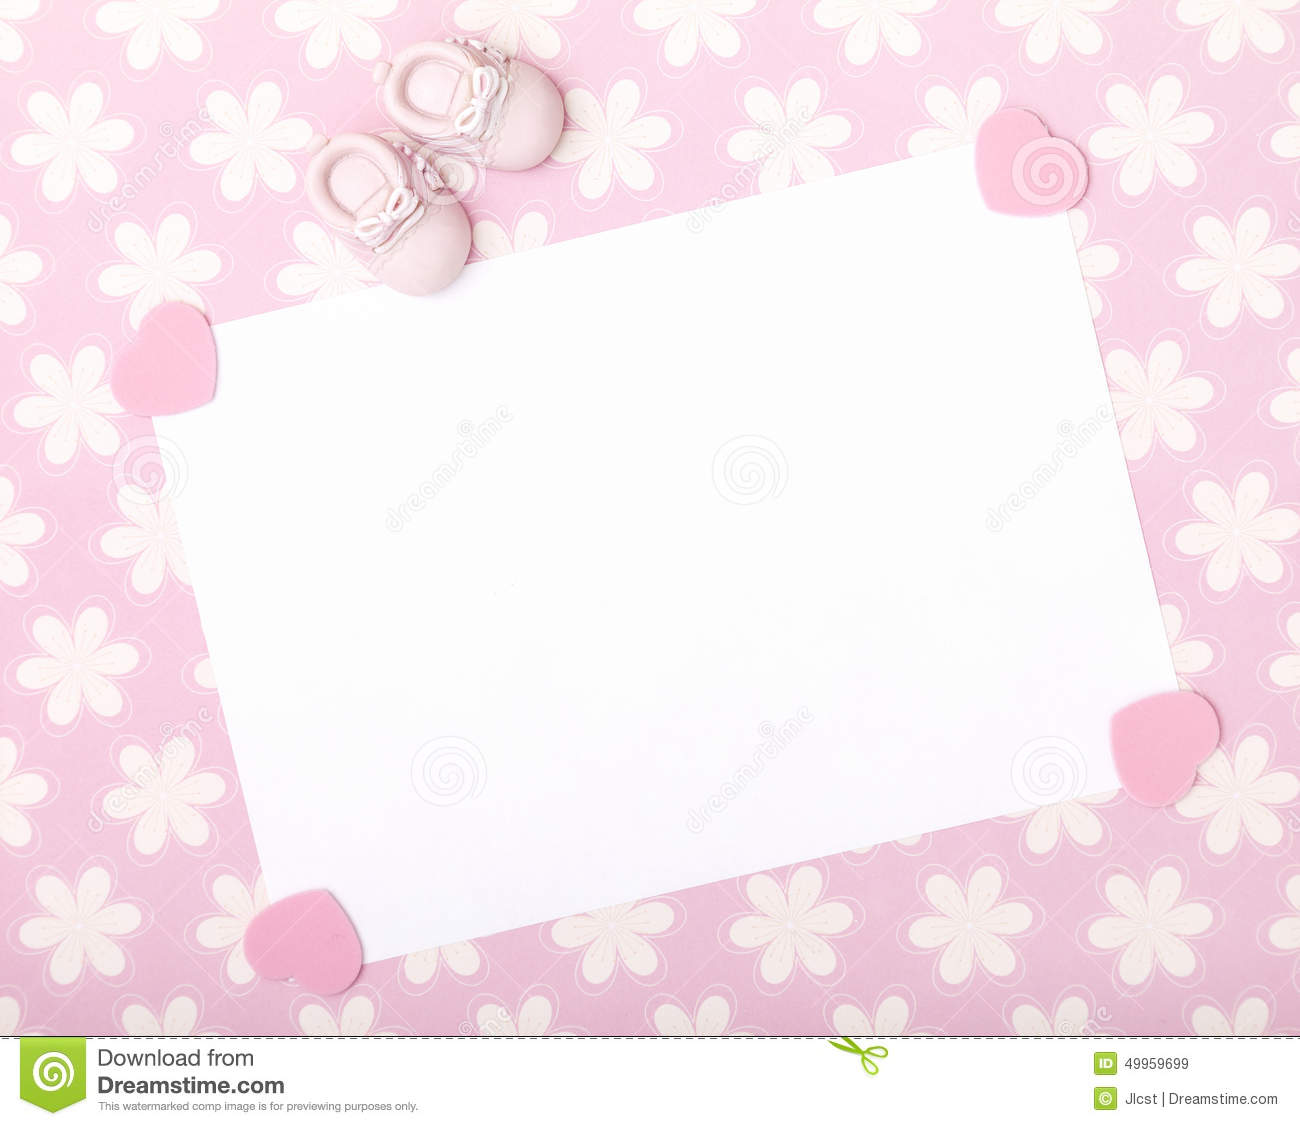 New baby announcement stock image. Image of blank, baby ...